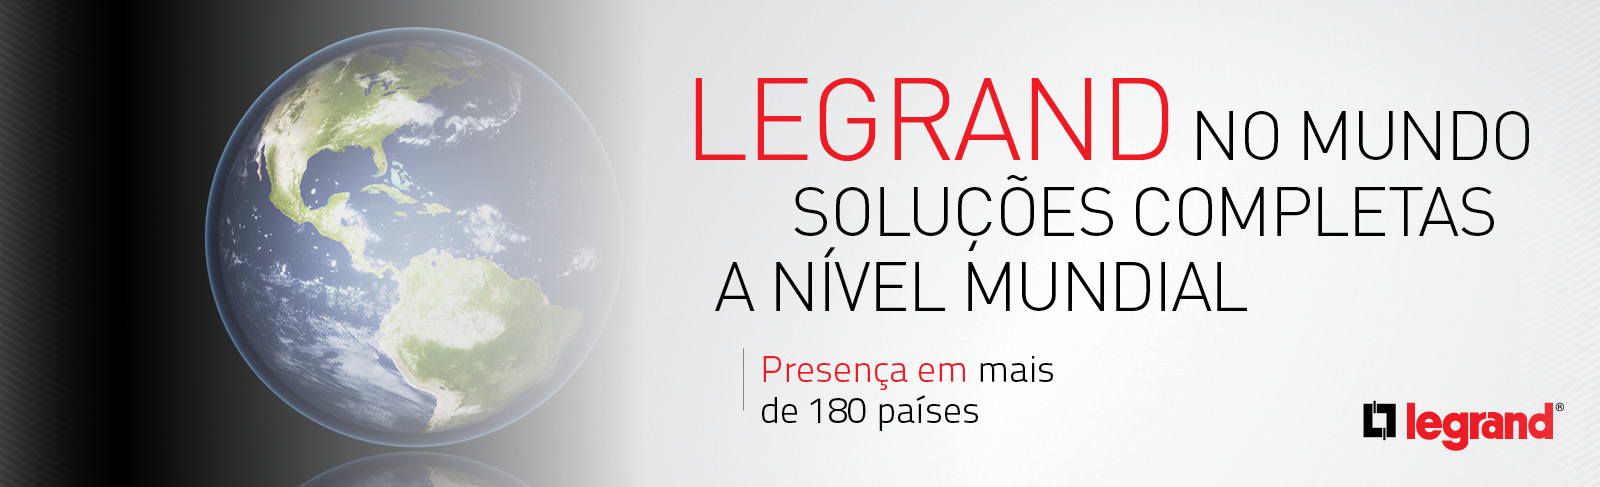 Legrand no Mundo